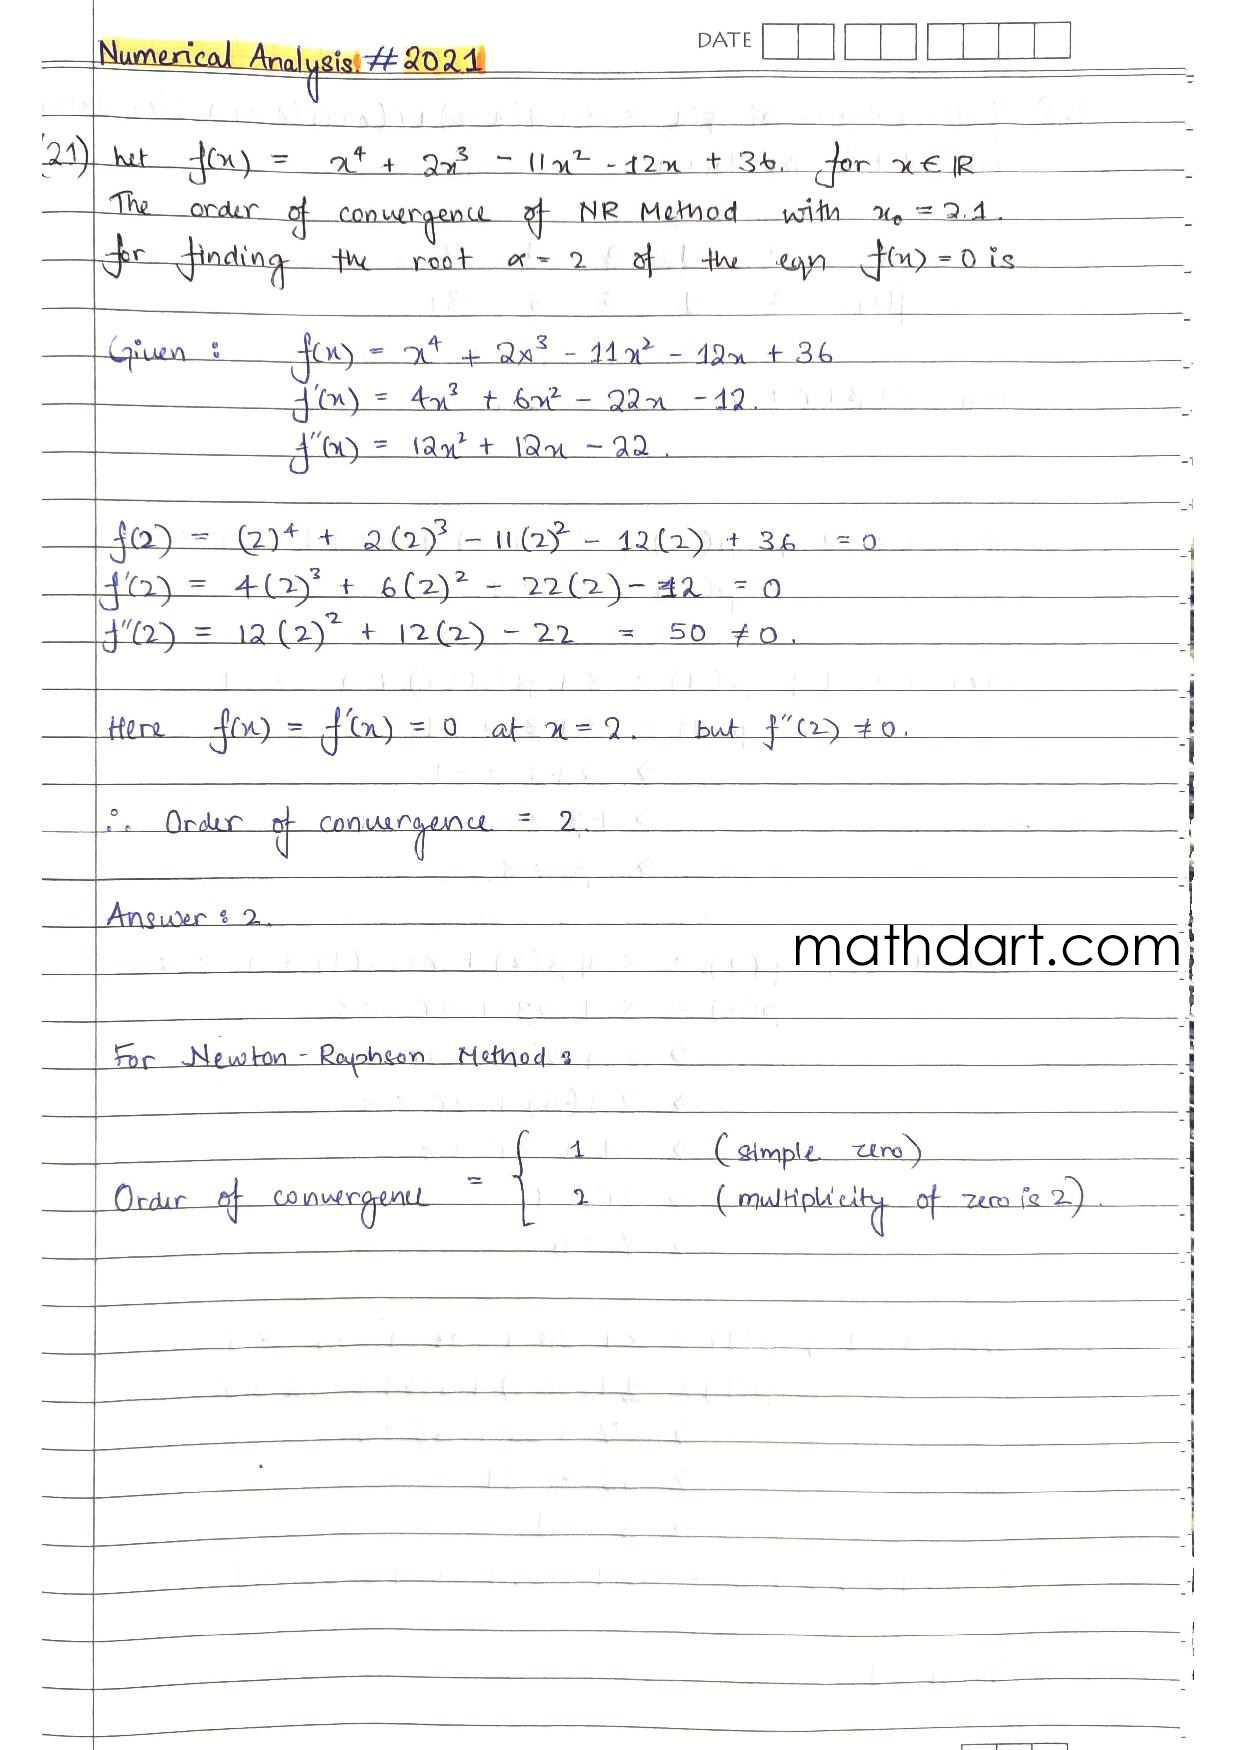 Numerical Analysis GATE Solutions 2021